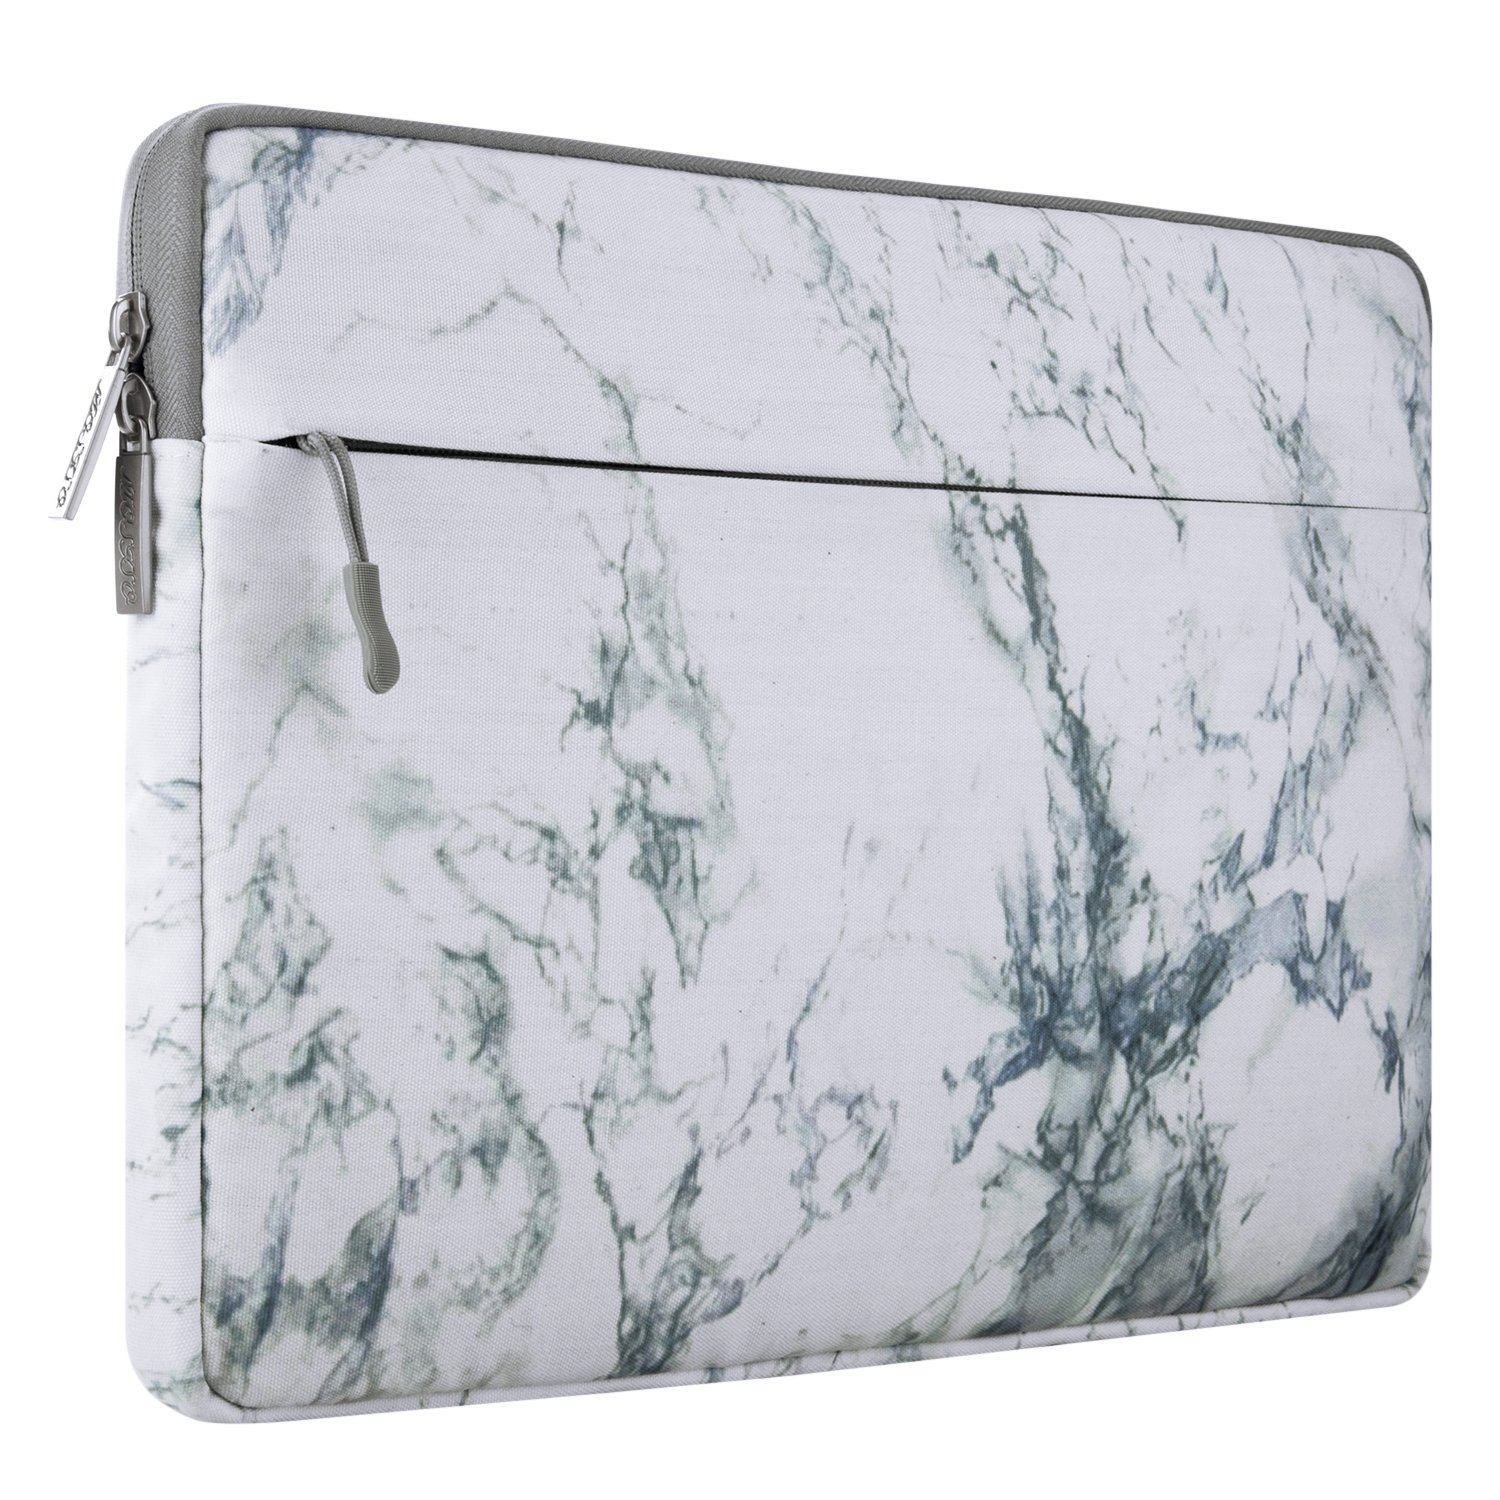 MOSISO Canvas Fabric Laptop Sleeve Case Bag Cover Compatible 13-13.3 Inch MacBook Pro, MacBook Air, Notebook Computer, White Marble Pattern by MOSISO